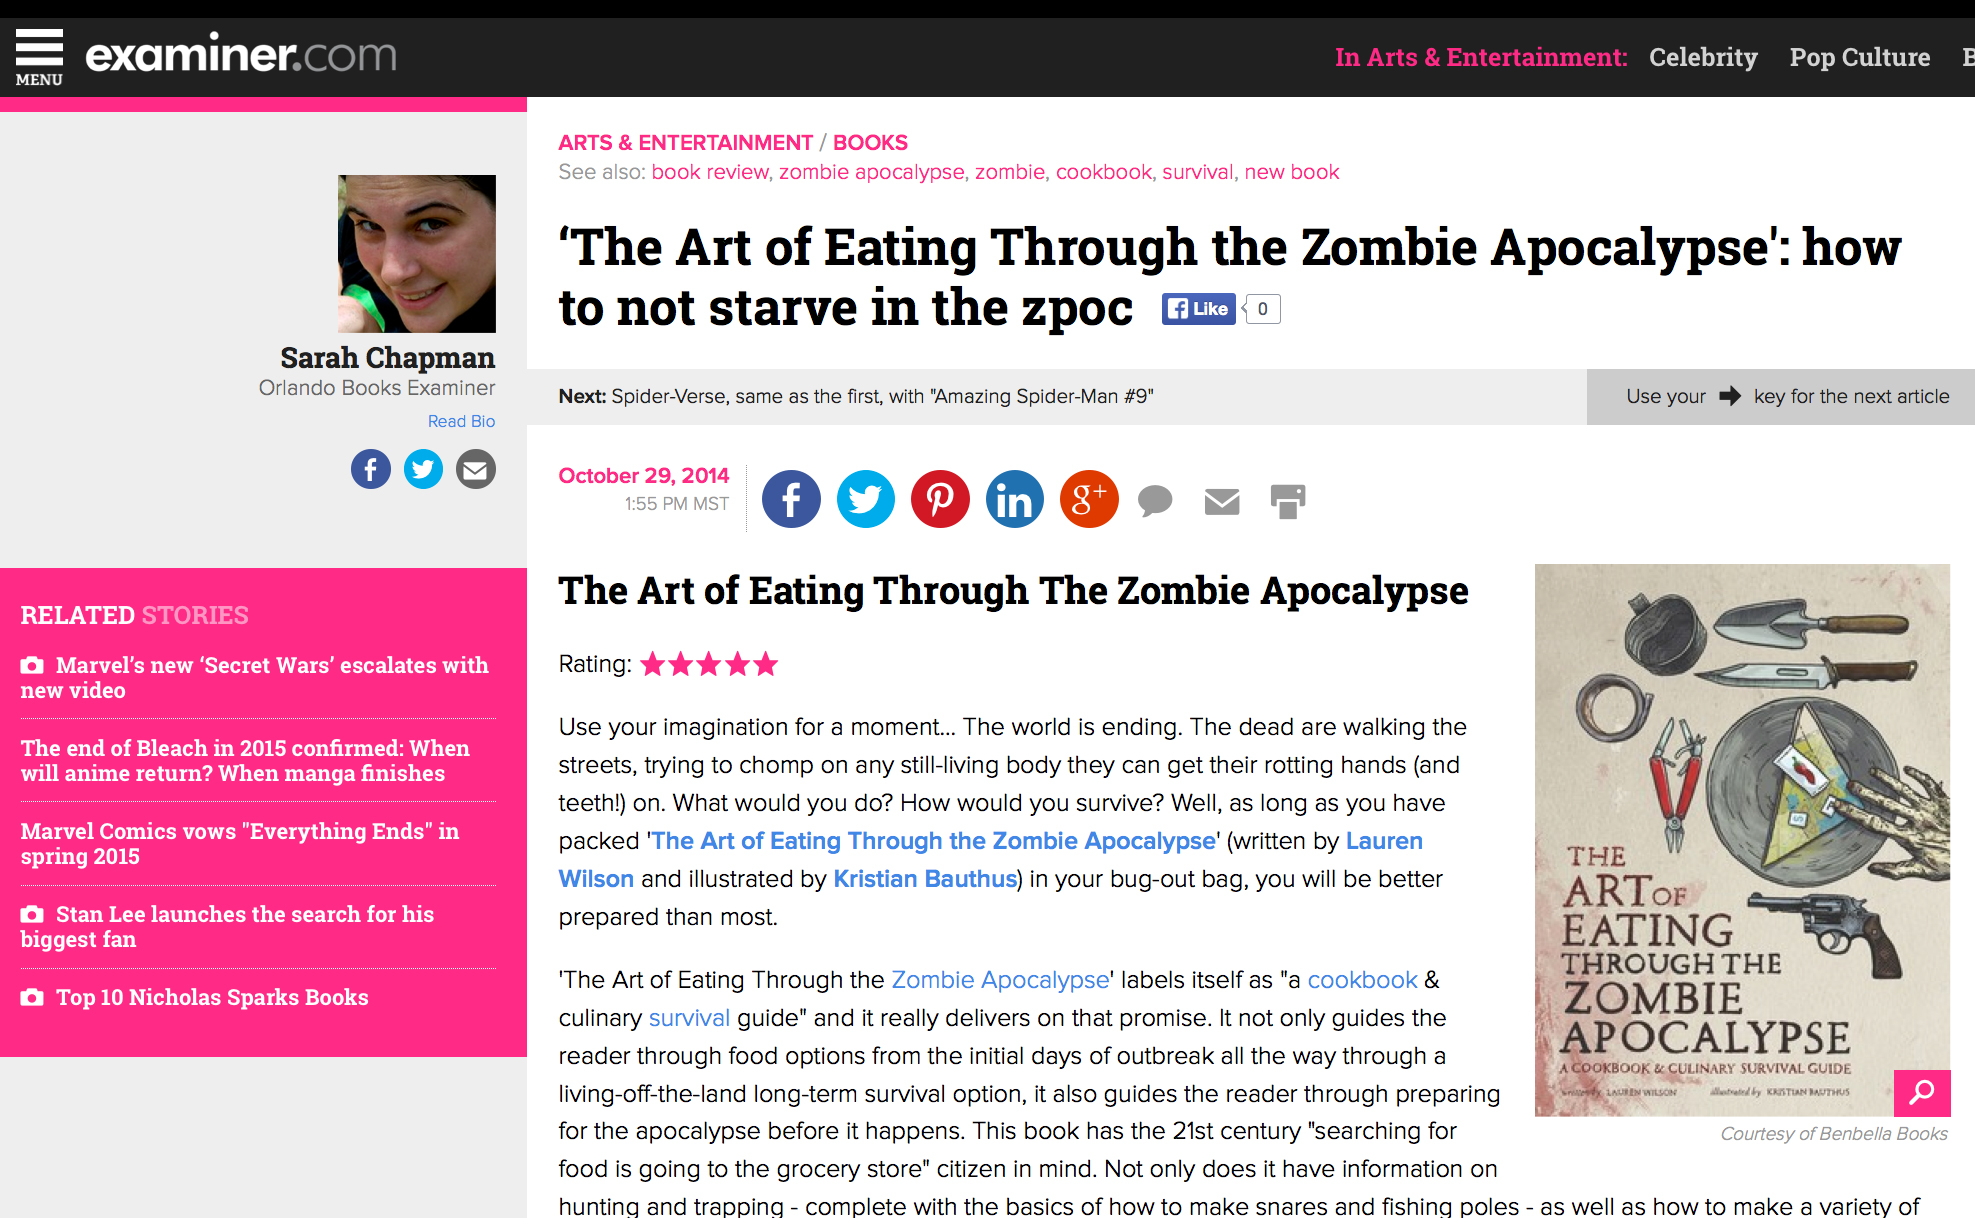 Review of The Art of Eating Through the Zombie Apocalypse on The Examiner.